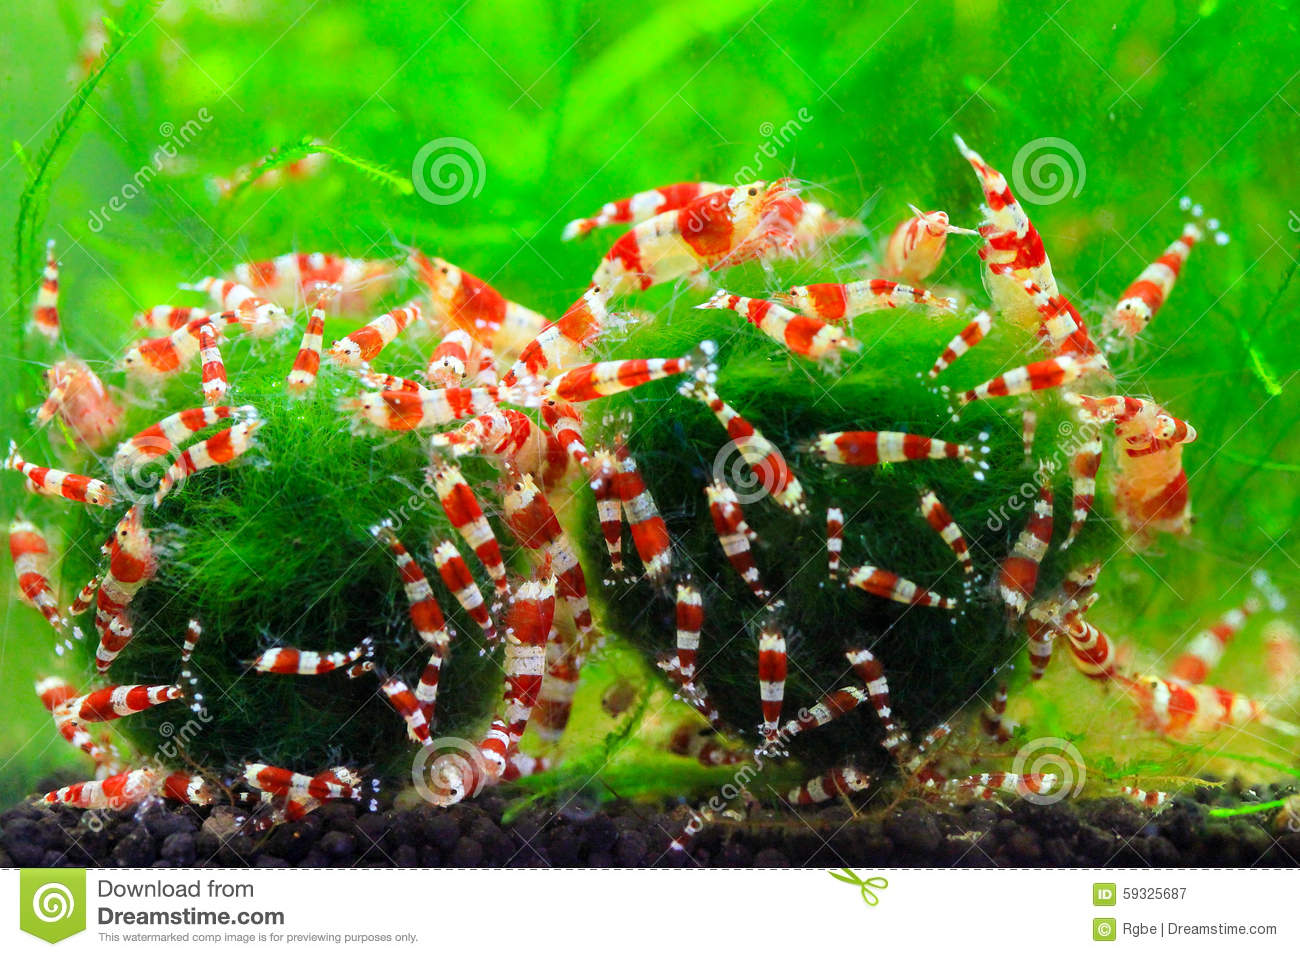 Colourful crystal red shrimps